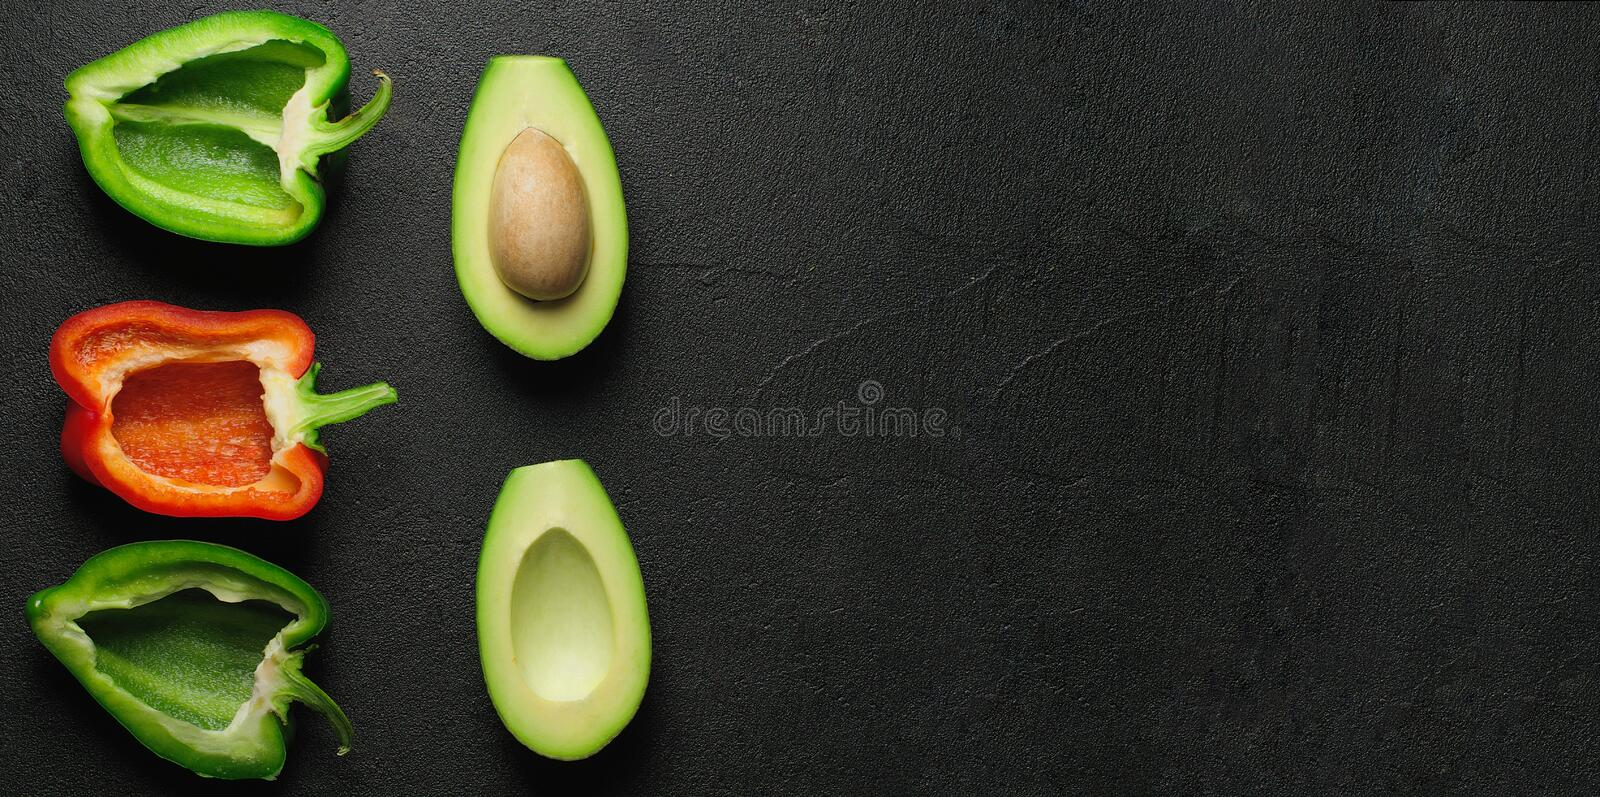 Healthy food clean eating selection on gray background. Green and red bell pepper, avocado. Top view. Place the text royalty free stock photo